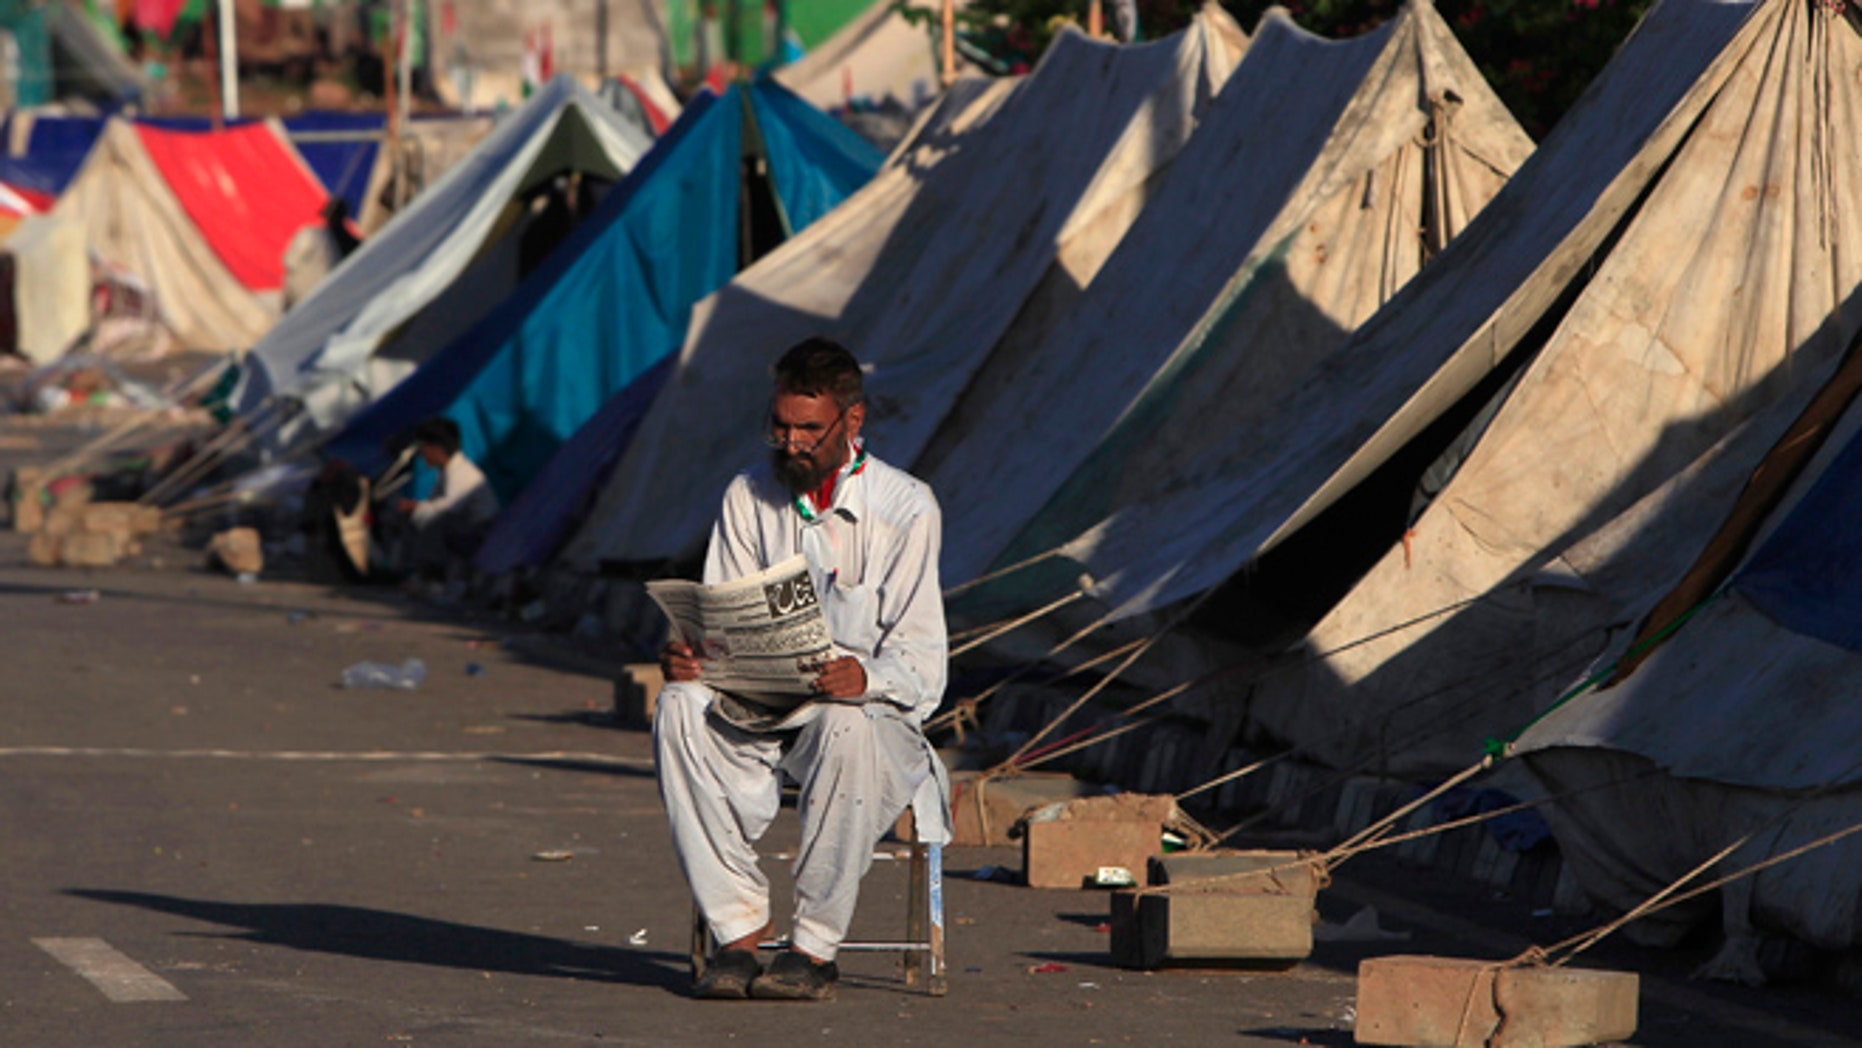 Sept. 7: An anti-government protester reads a newspaper as he sits outside makeshift tents, set up in front of the Parliament House during the Revolution March in Islamabad.